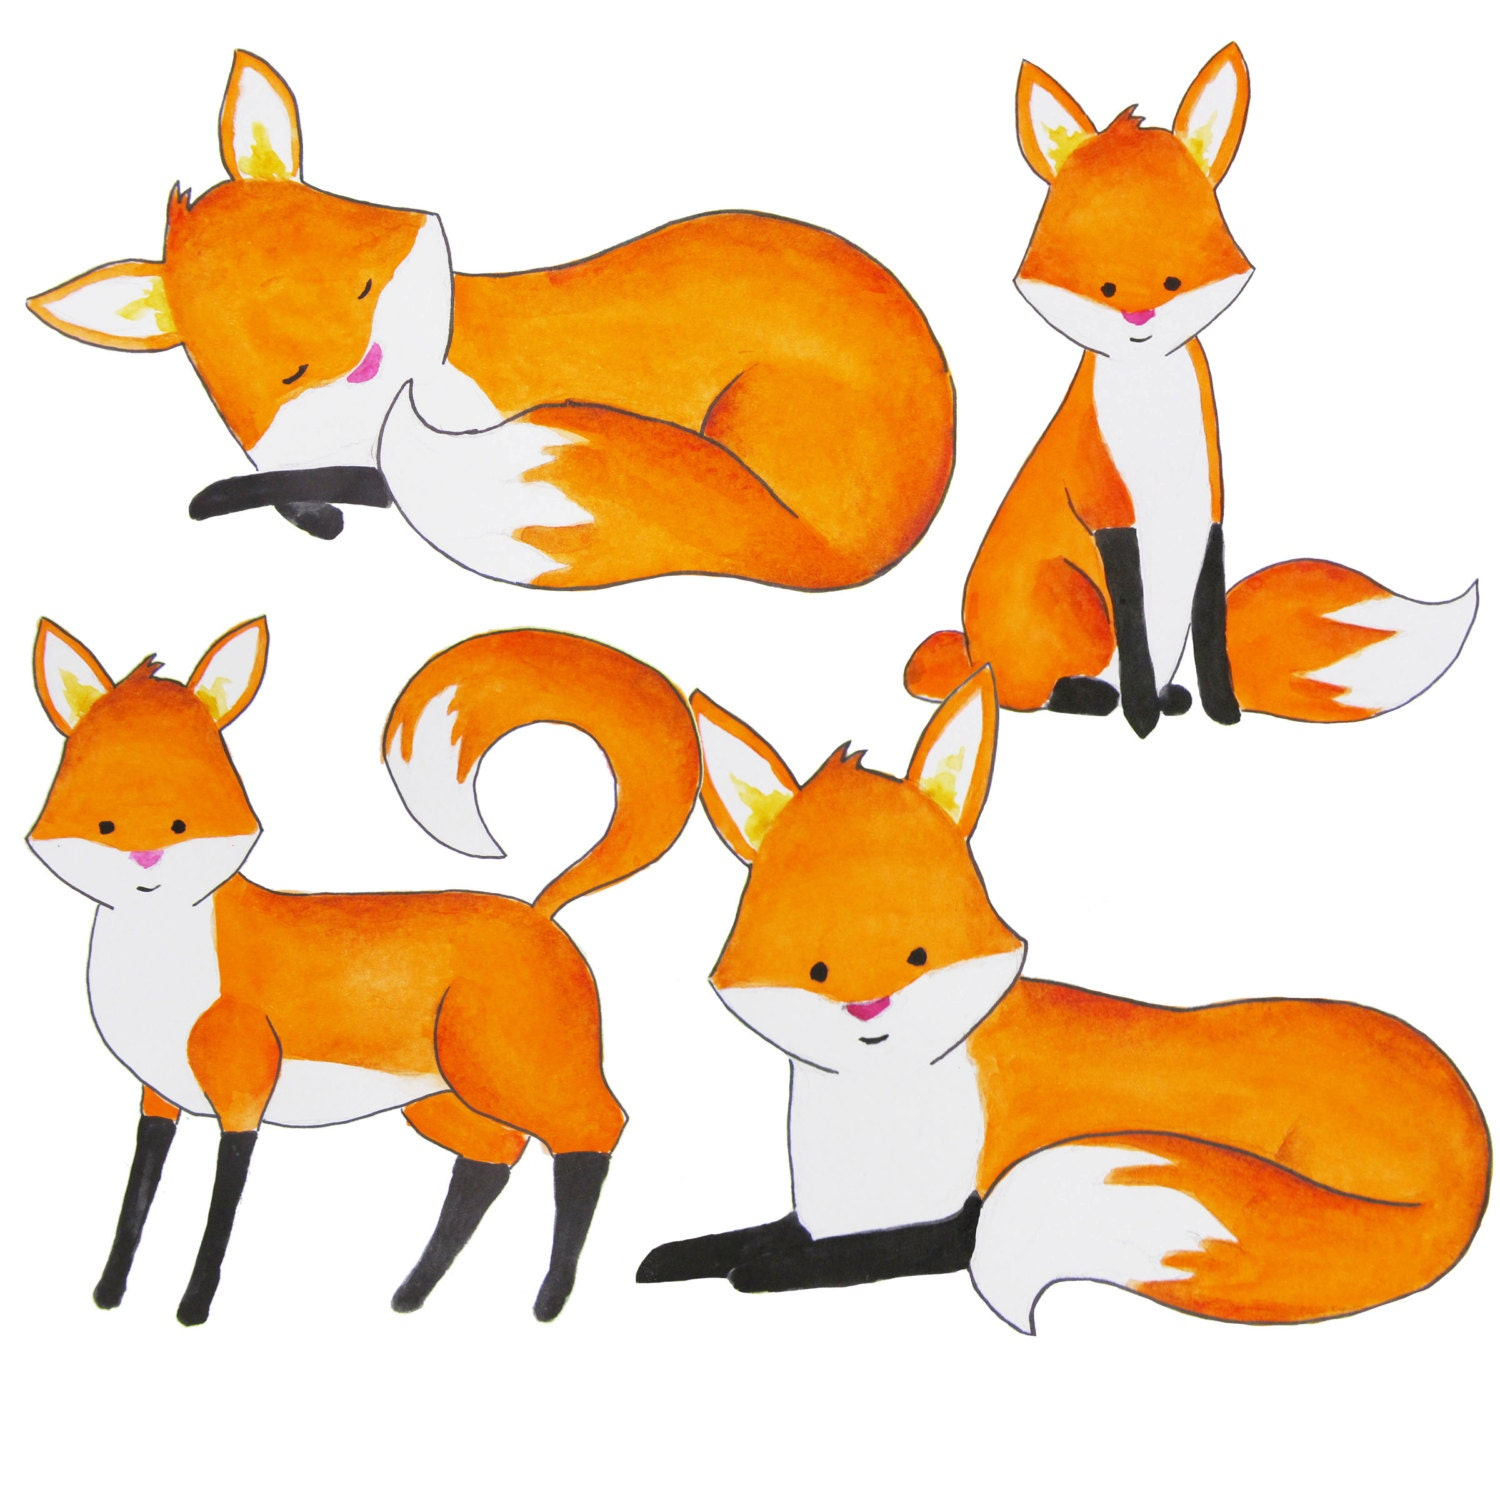 watercolor fox clipart foxes clipart red fox clip art rh etsy com red fox clipart black and white red fox clipart black and white